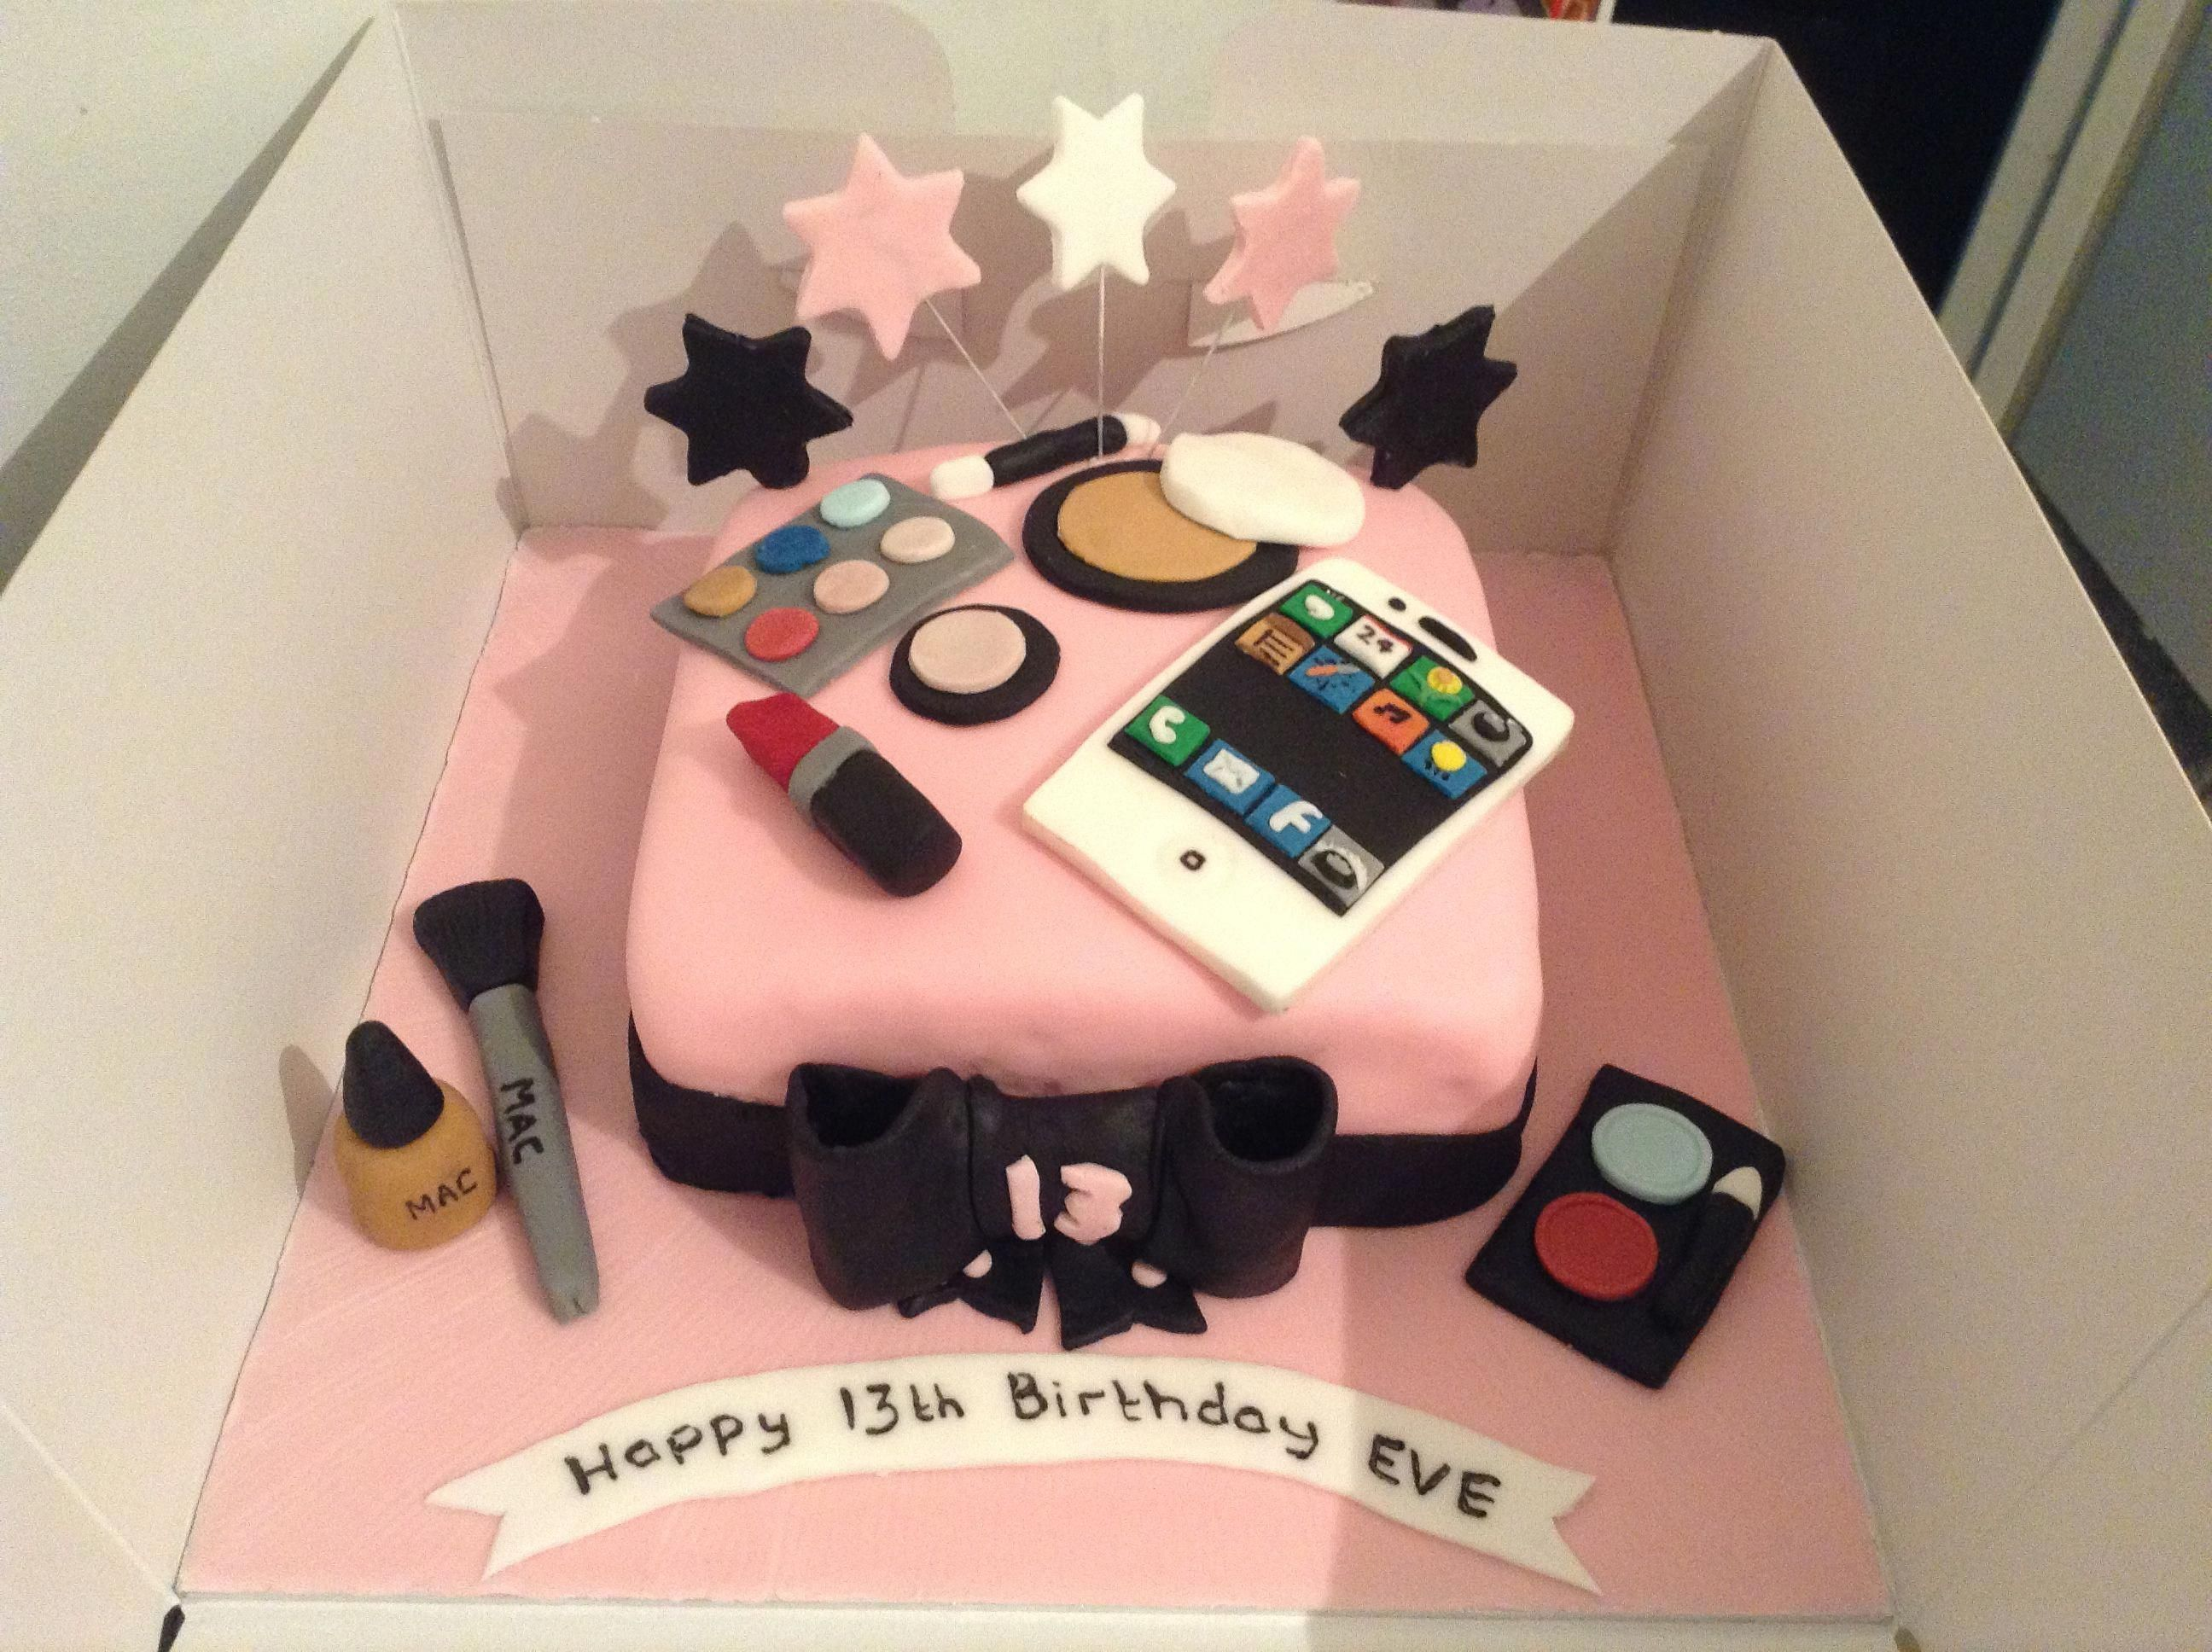 Incredible Teenage Girls Birthday Cake Iphone And Make Up Perfect For Personalised Birthday Cards Veneteletsinfo